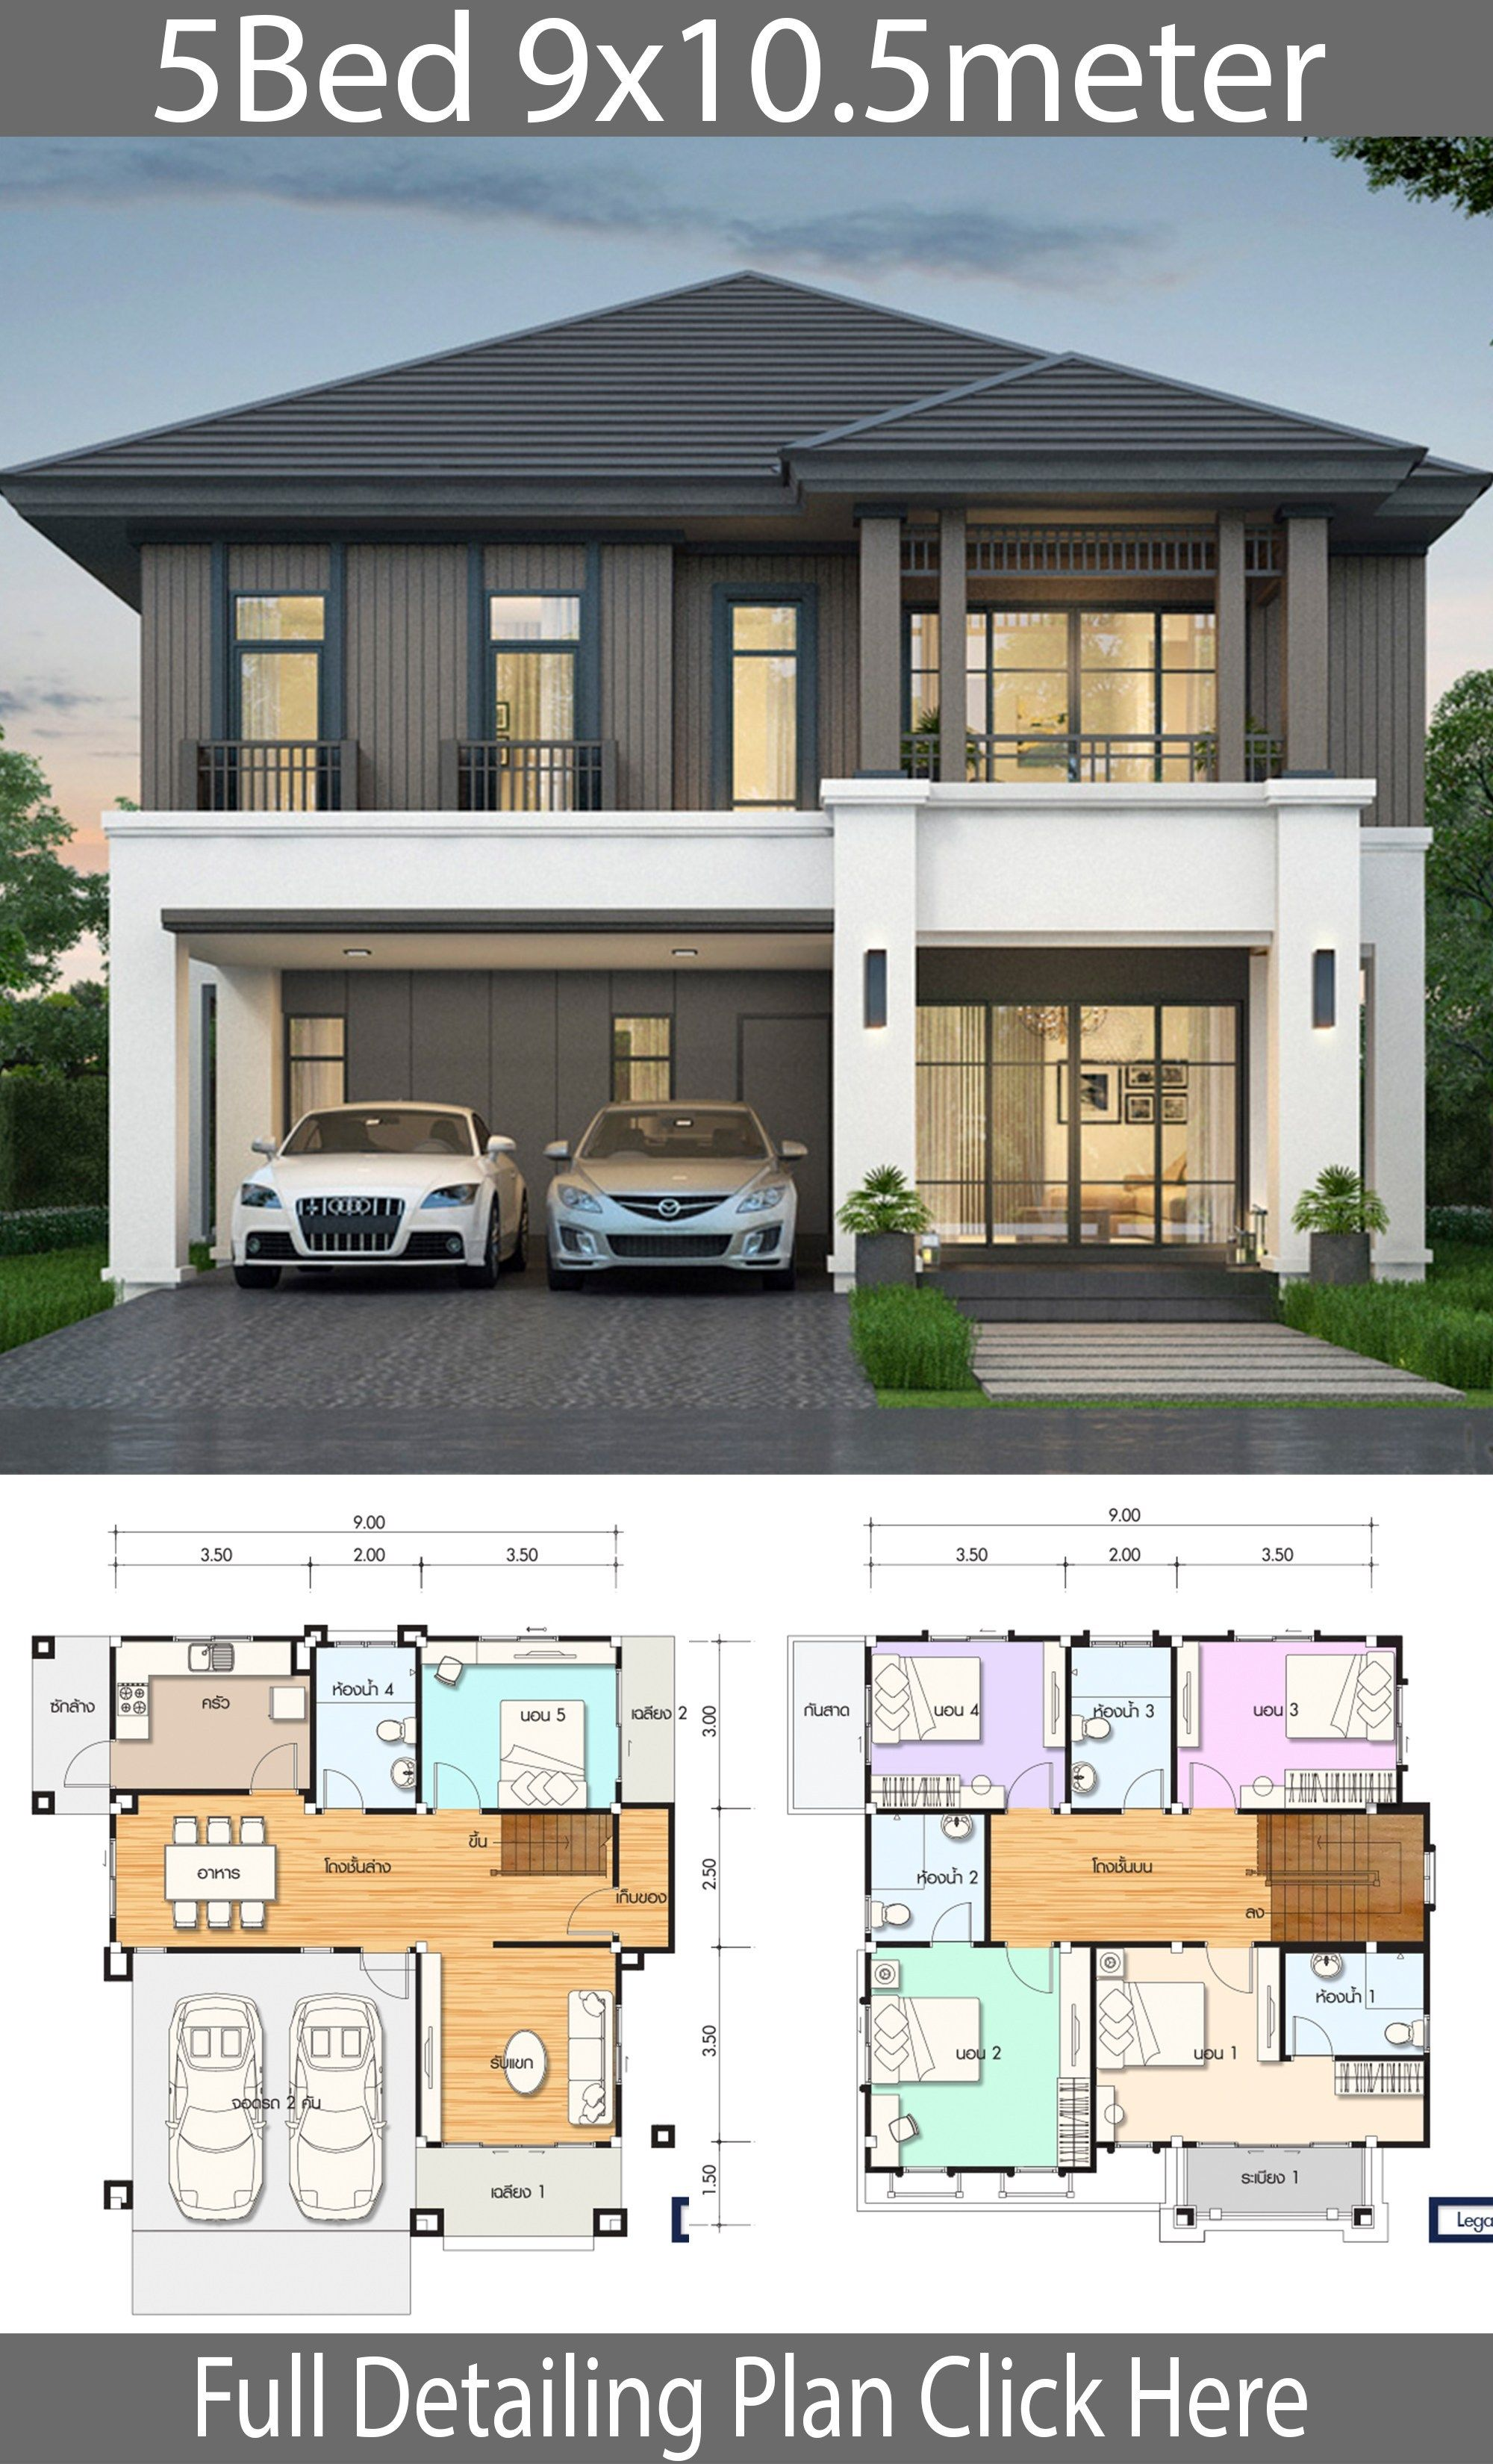 House Design Plan 9x10 5m With 5 Bedrooms Duplex House Design